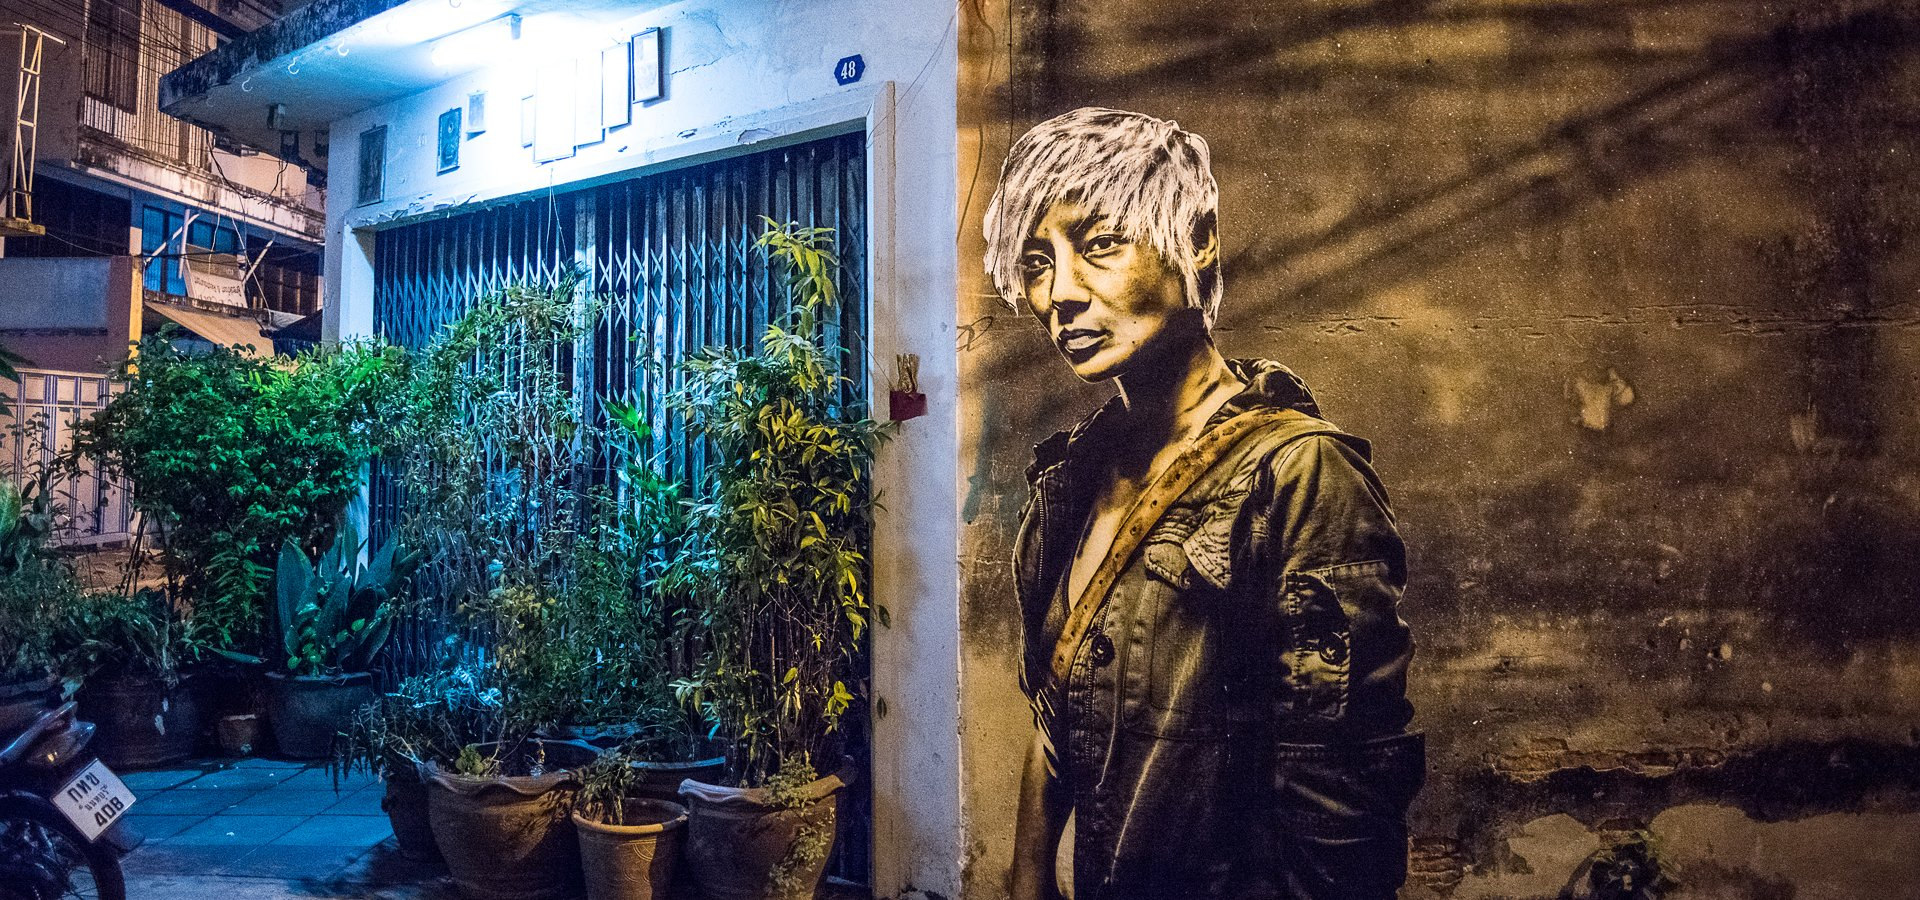 Eddie Colla Gold Fish Lady dans la rue vieille du temple